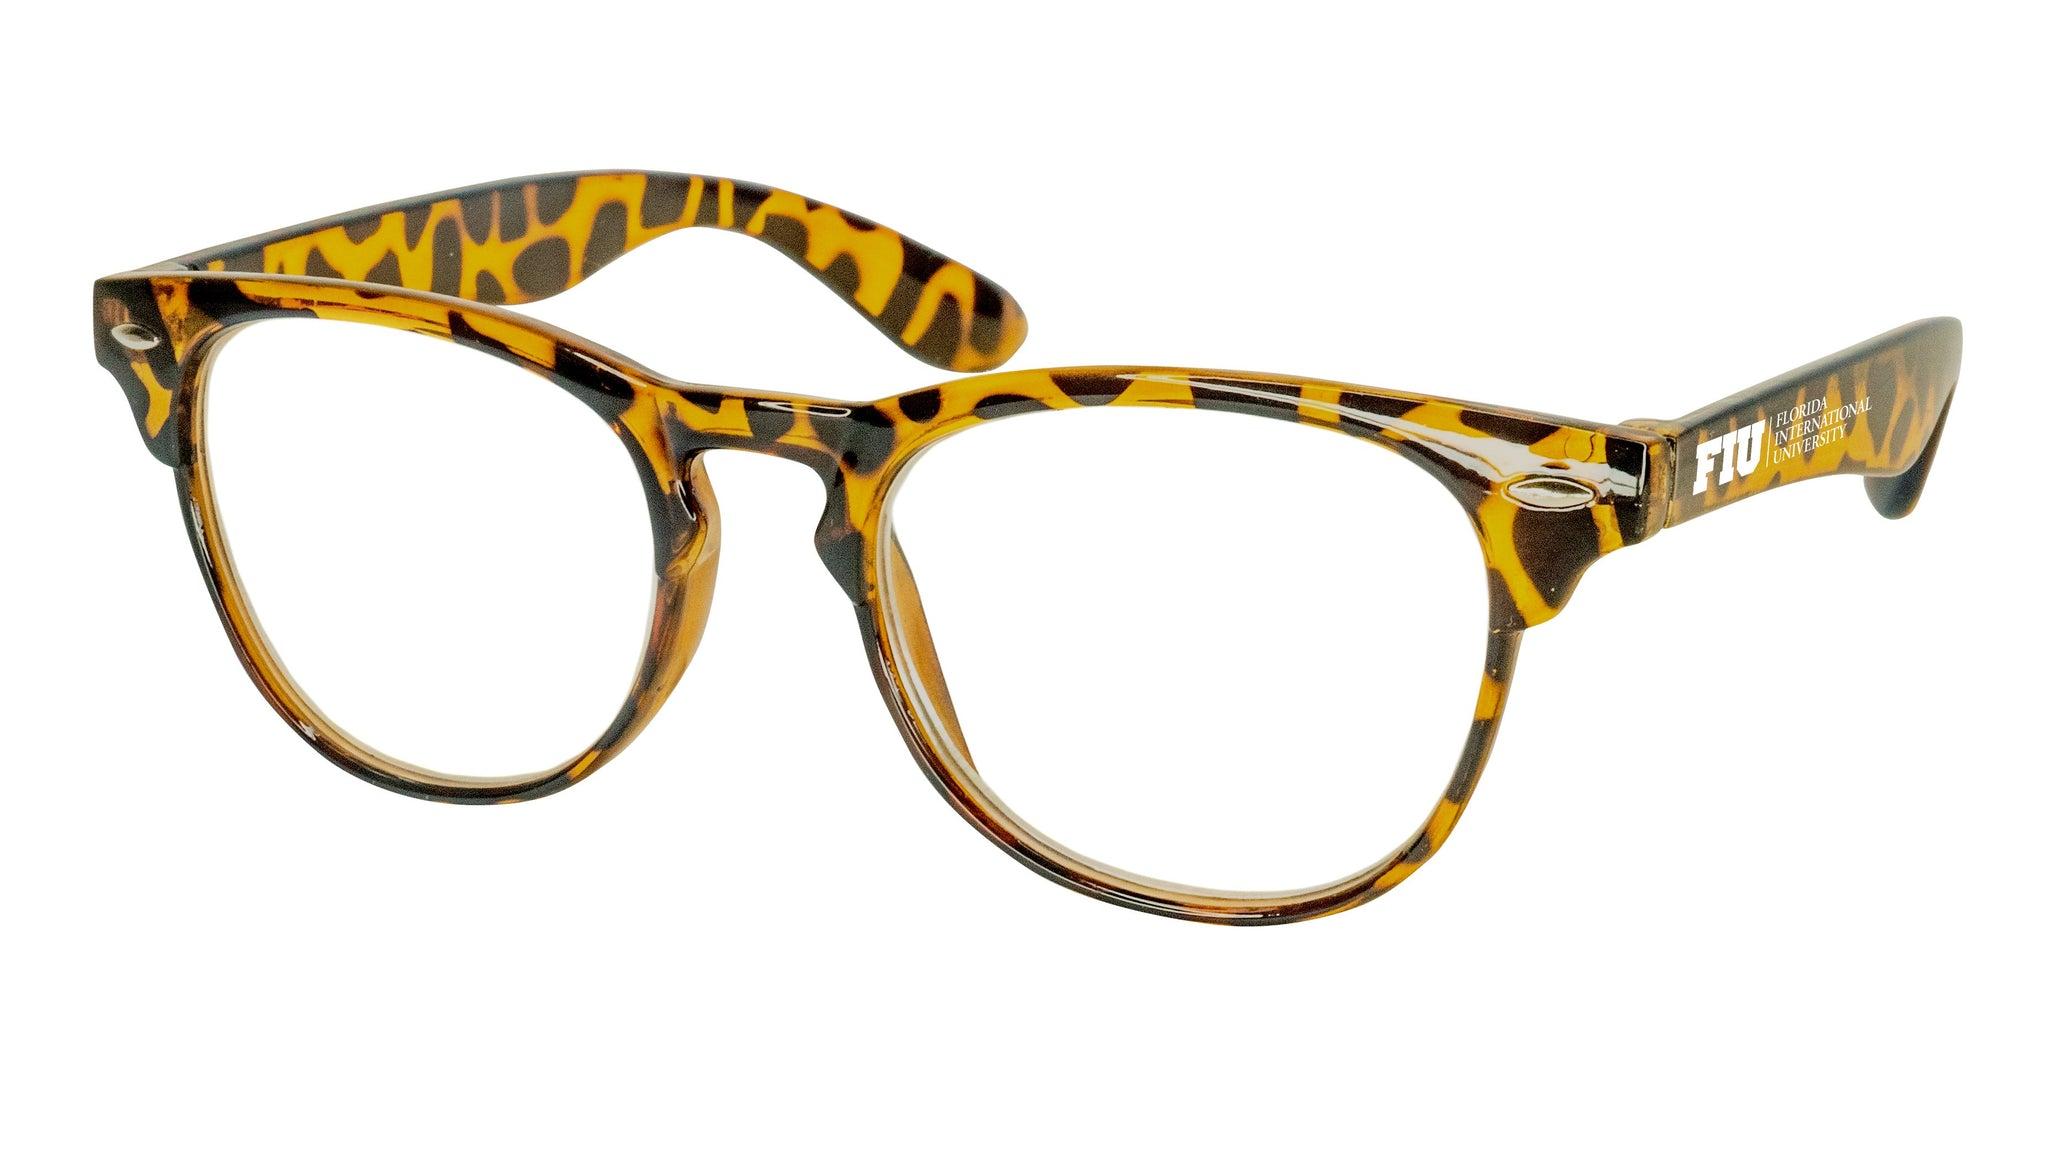 4194 - Tortoise Readers Eyeglasses